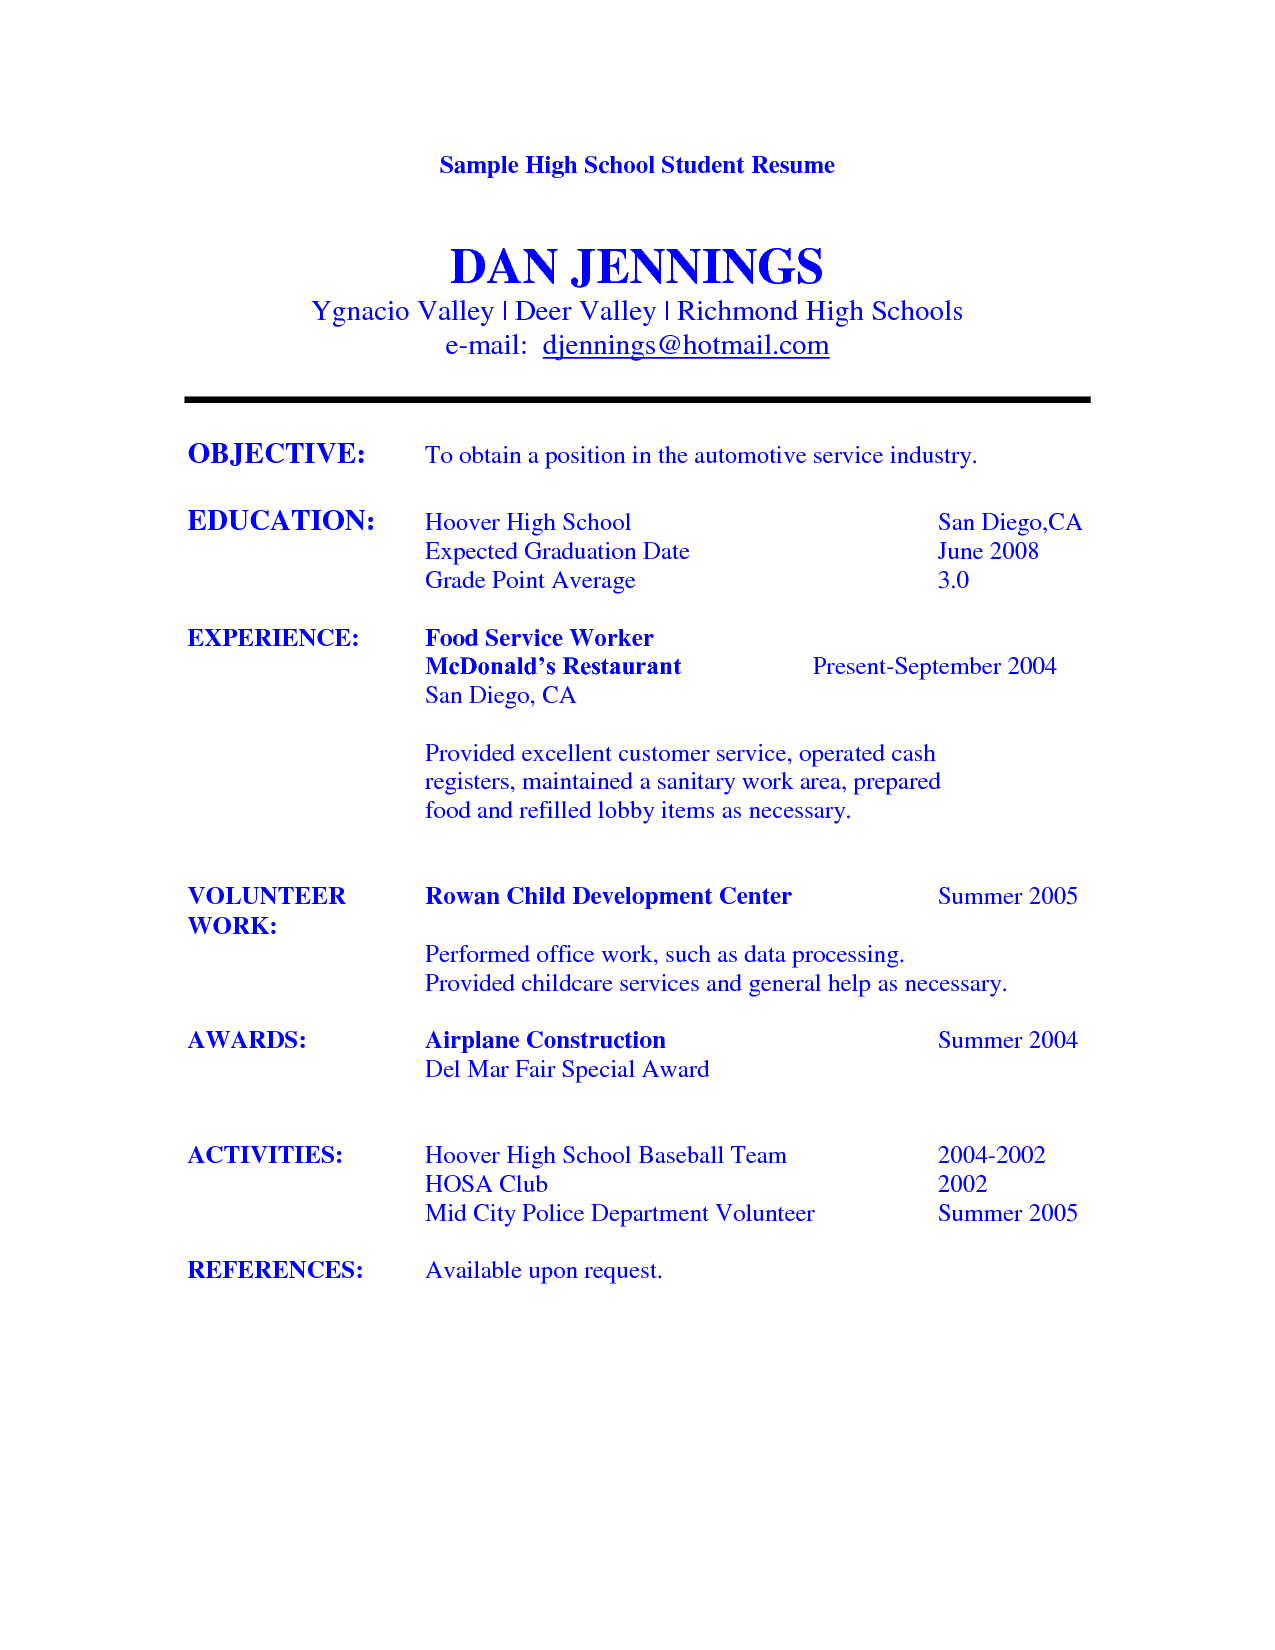 sample resume objectives for college students – Objectives for College Resumes